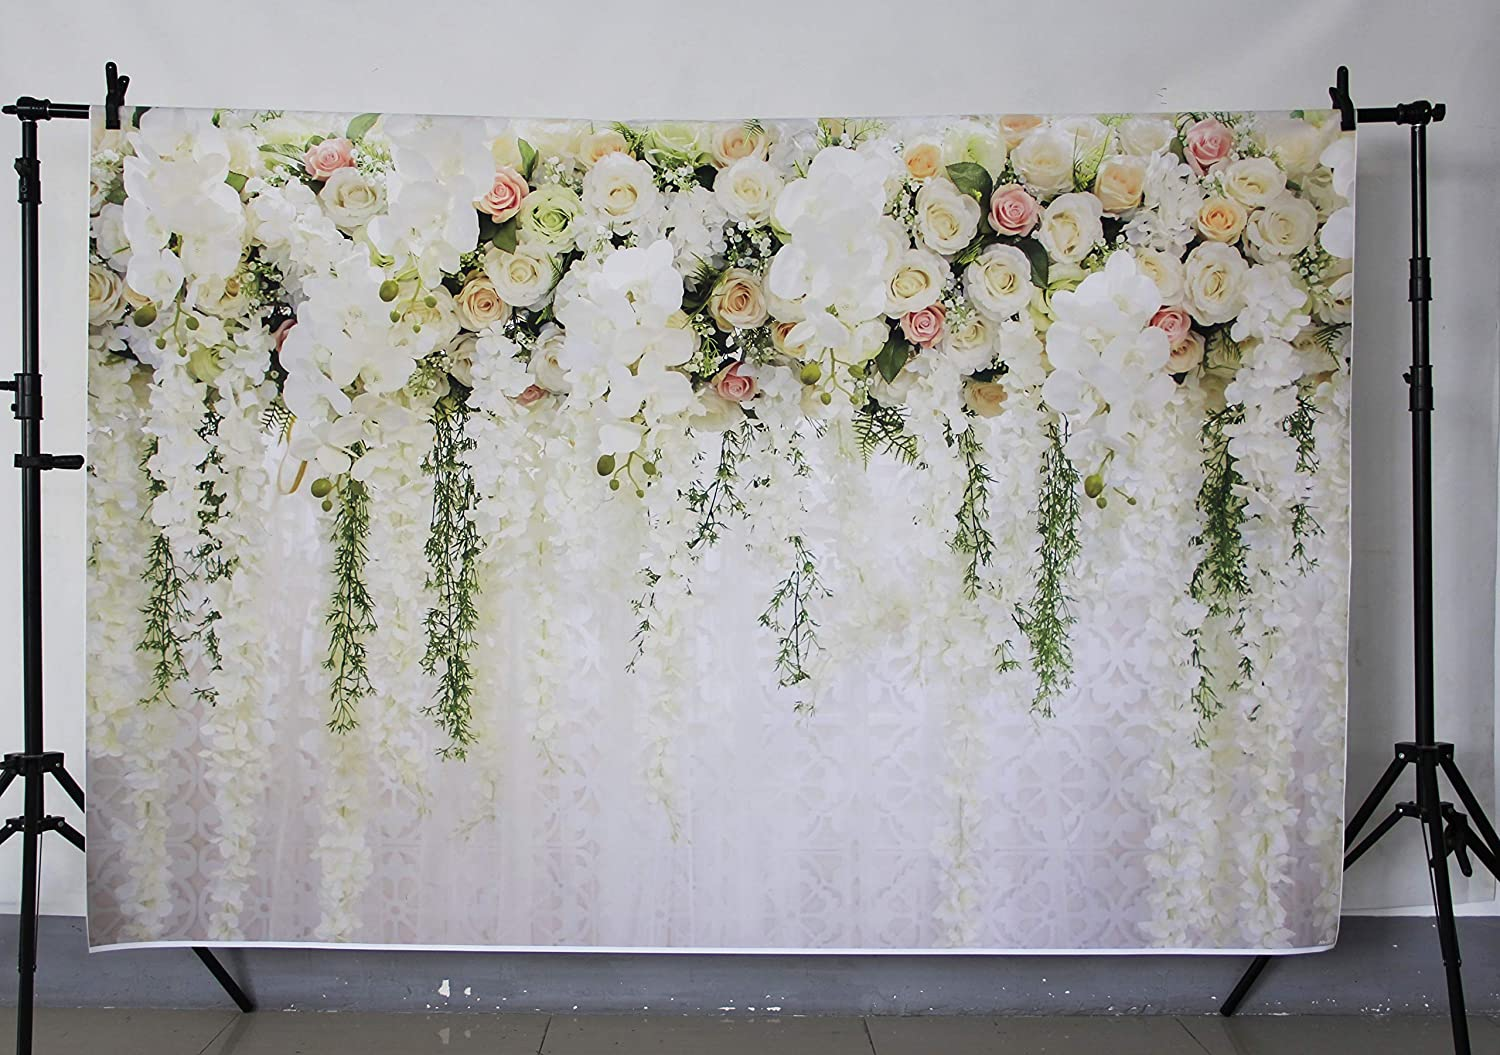 SJOLOON 5X7ft Rose Floral Backdrop Wall Newborns Portraits Photography Backdrop Art Fabric Studio Pink Flowers Wall Photo Backdrop 10939